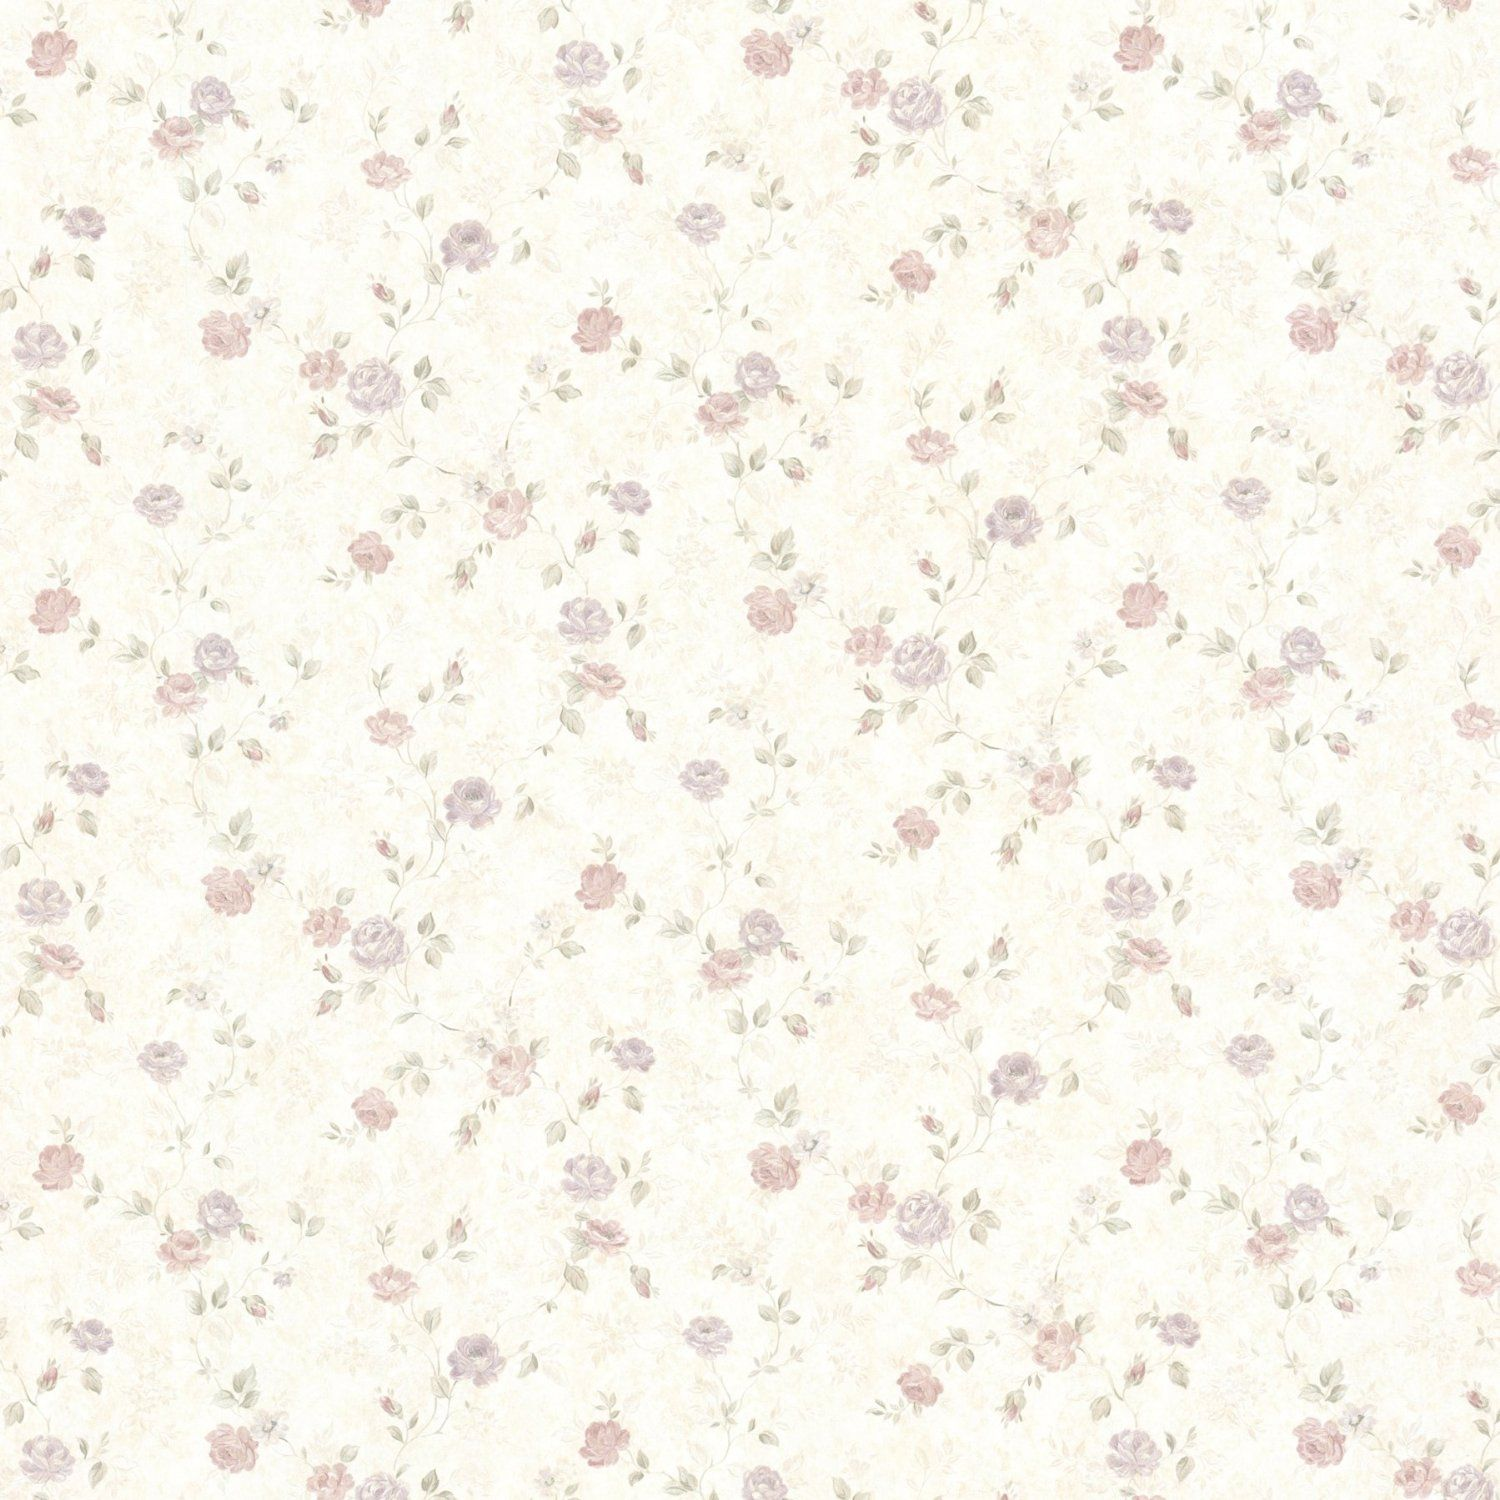 Shabby Chic Wallpapers   Top Shabby Chic Backgrounds 1500x1500